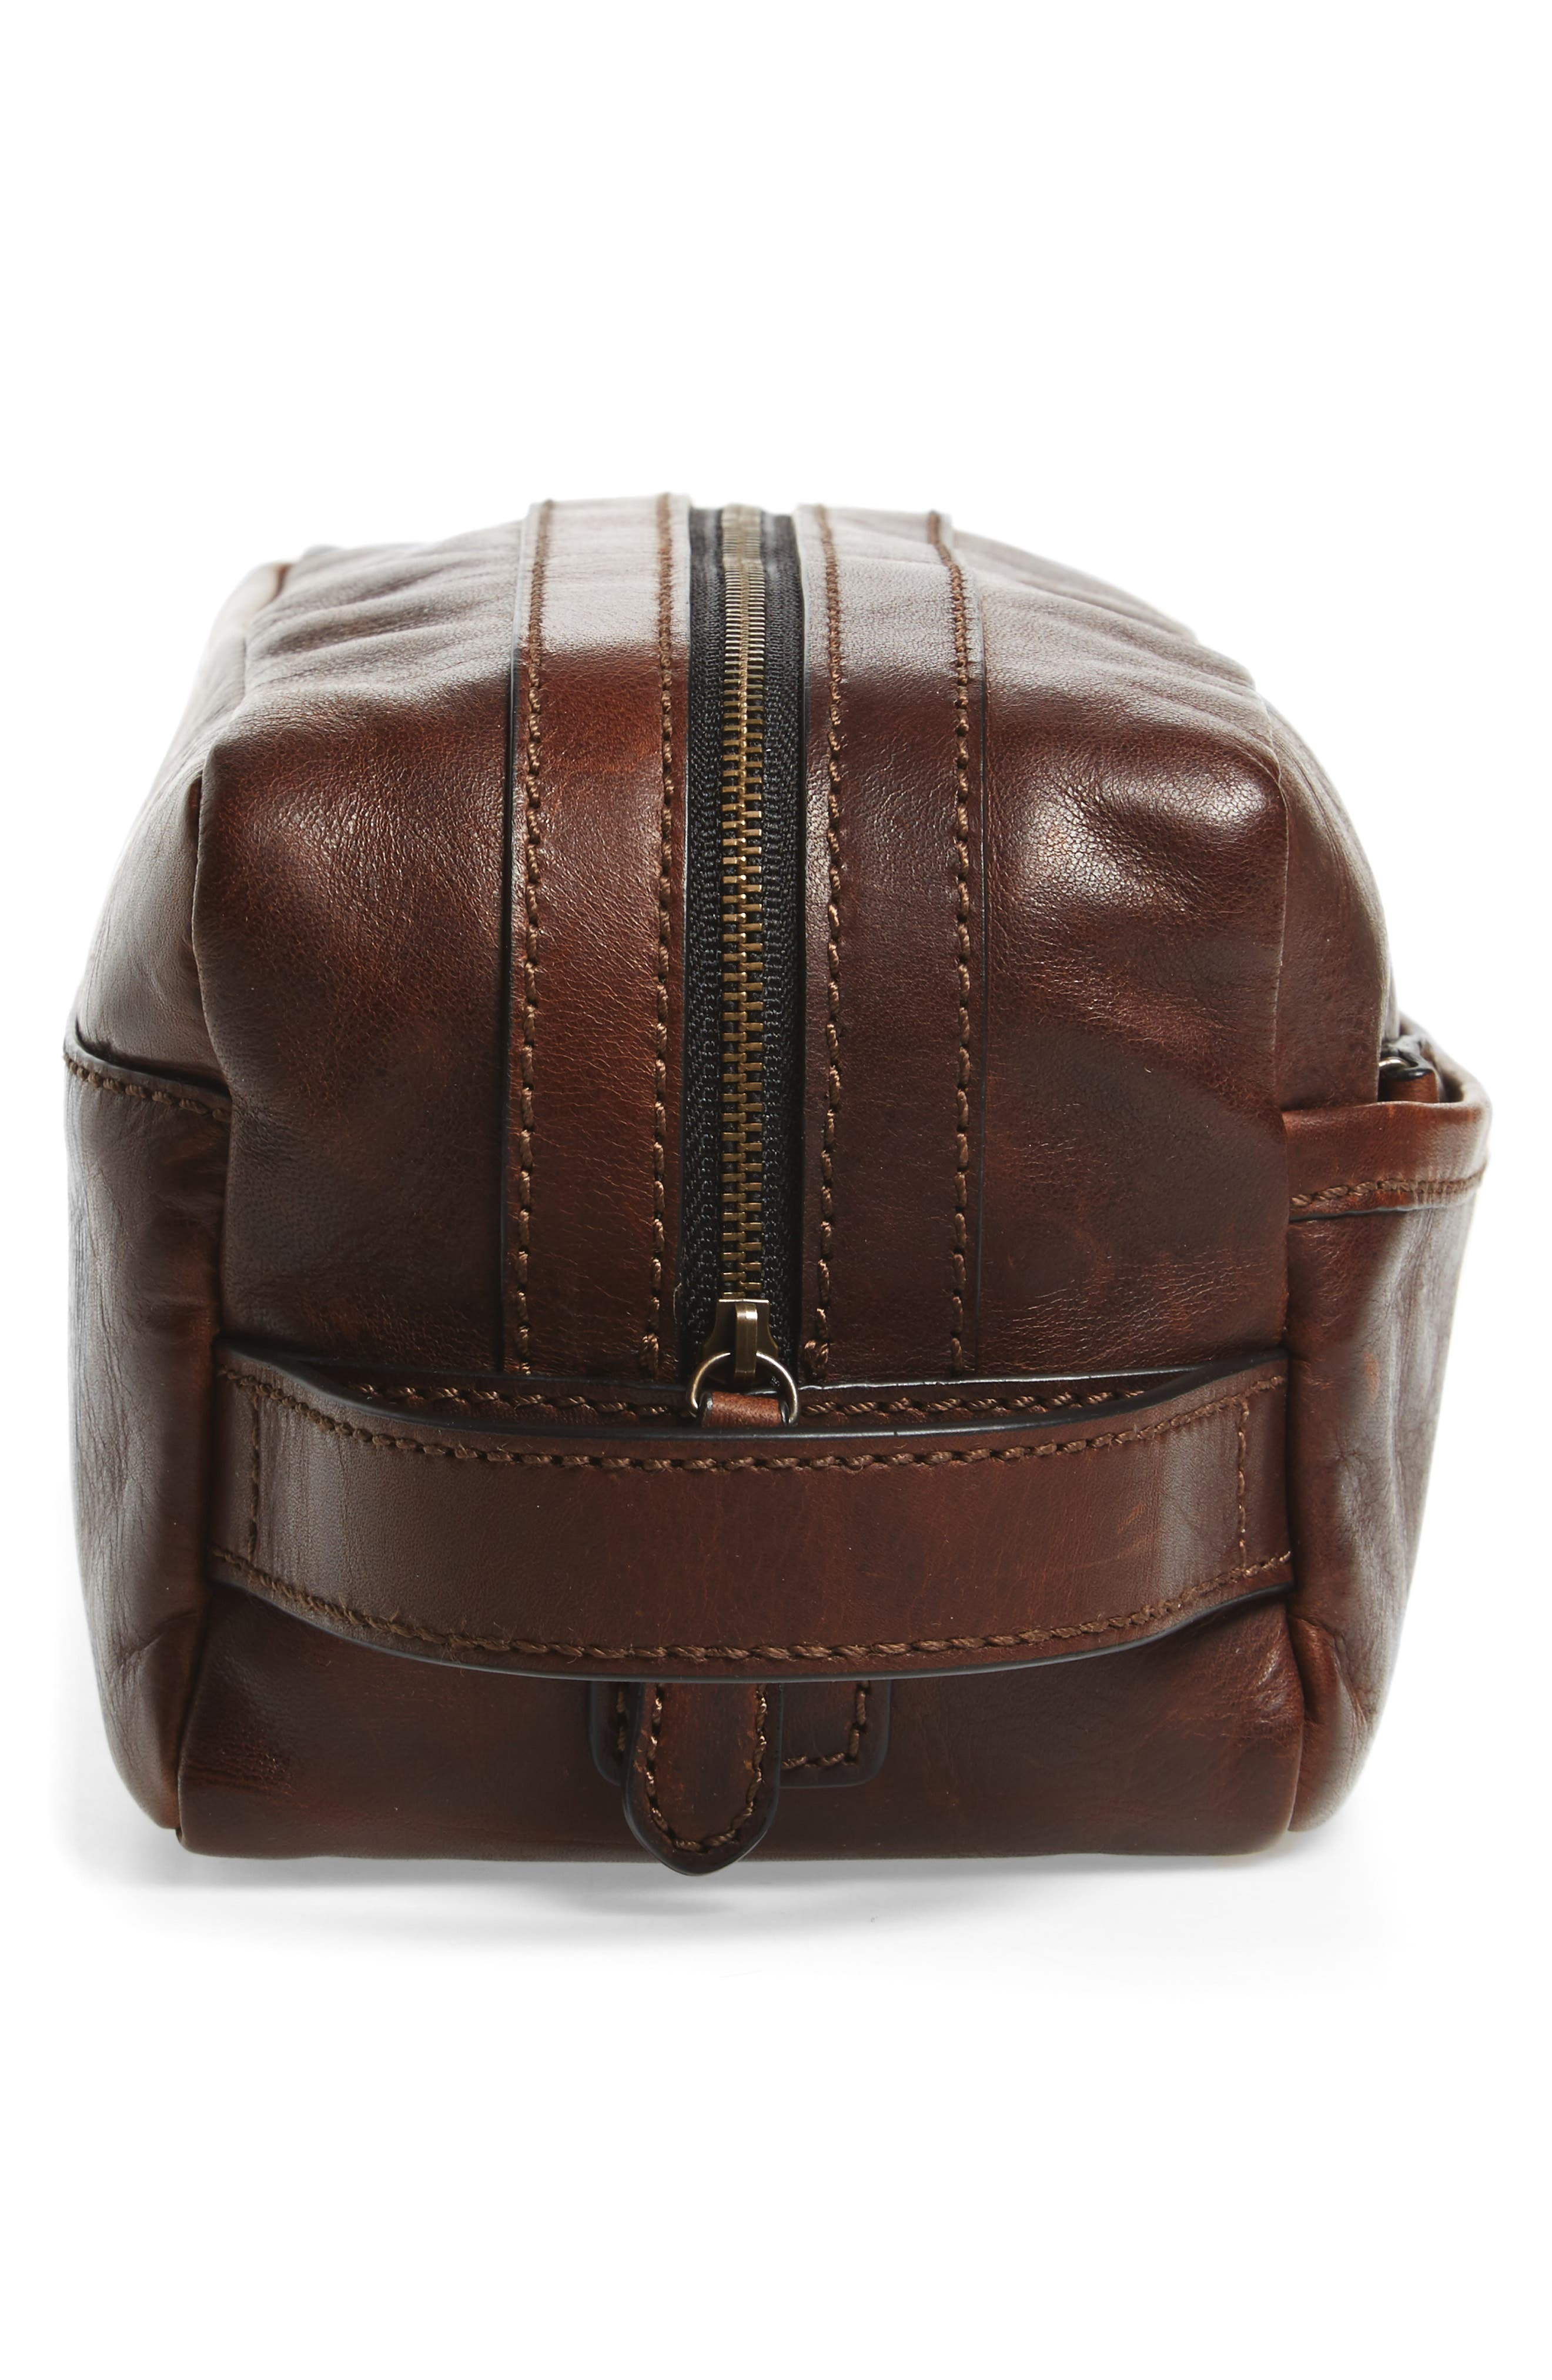 'Logan' Leather Travel Kit,                             Alternate thumbnail 4, color,                             Dark Brown